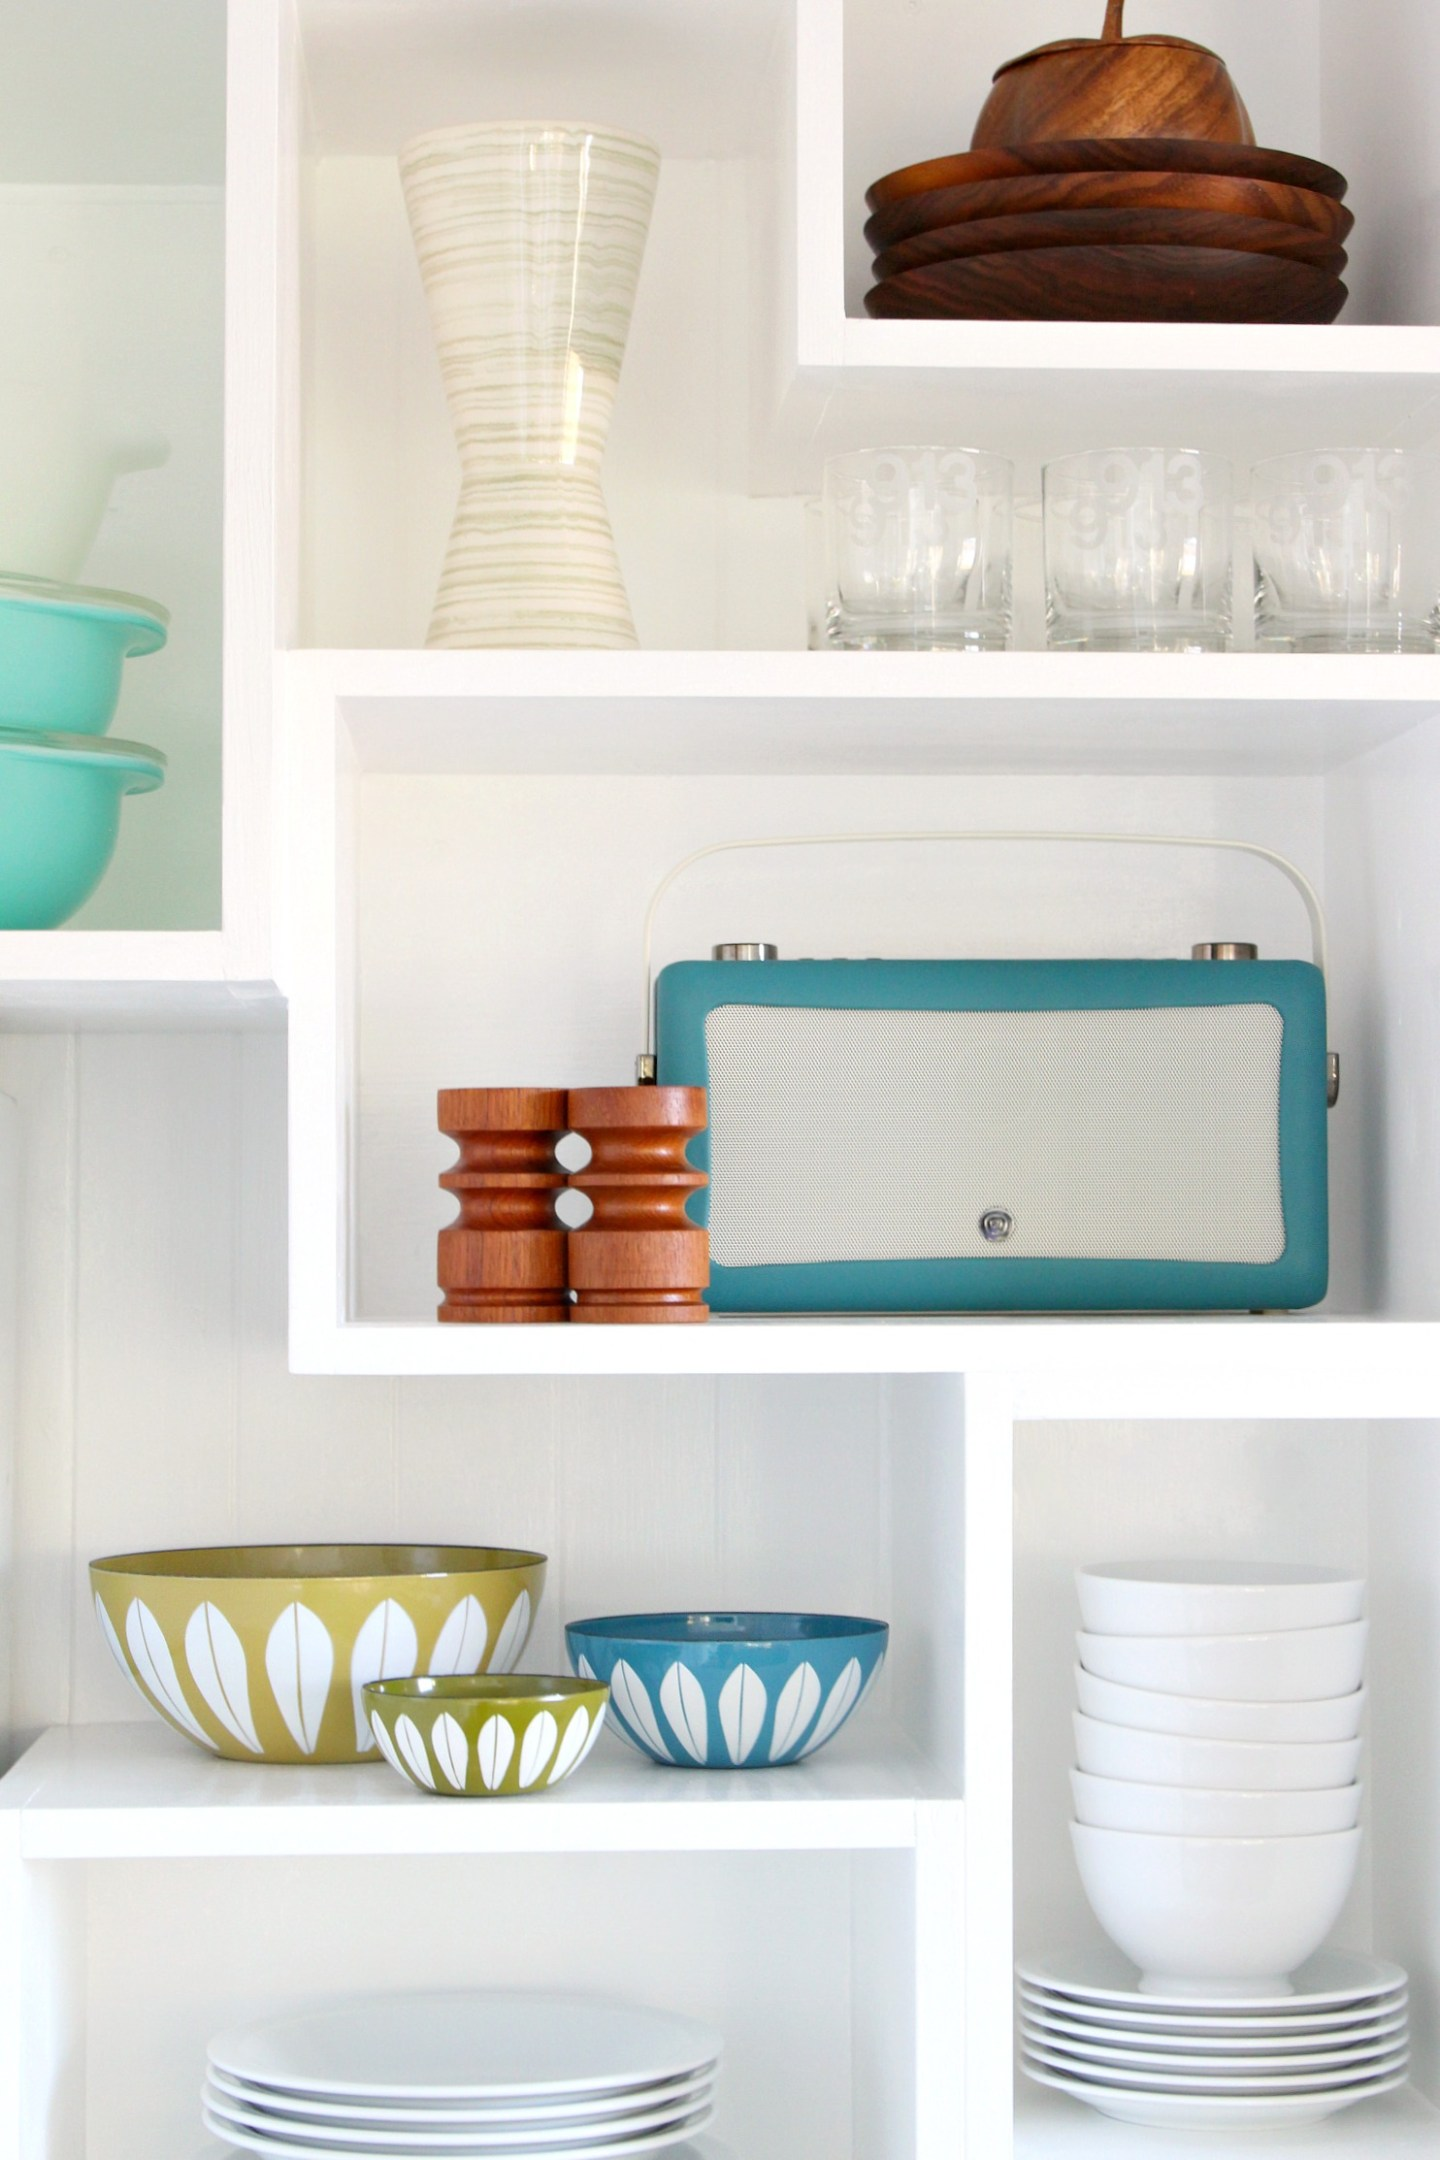 How to Build Wall Cubbies   Fresh Take on Kitchen Open Shelving. Open Shelving Ideas for the Kitchen for Added Kitchen Storage and Organization. Wall Cubbies DIY Tutorial Looks so Fun! #wallcubbies #kitchenstorage #openshelving